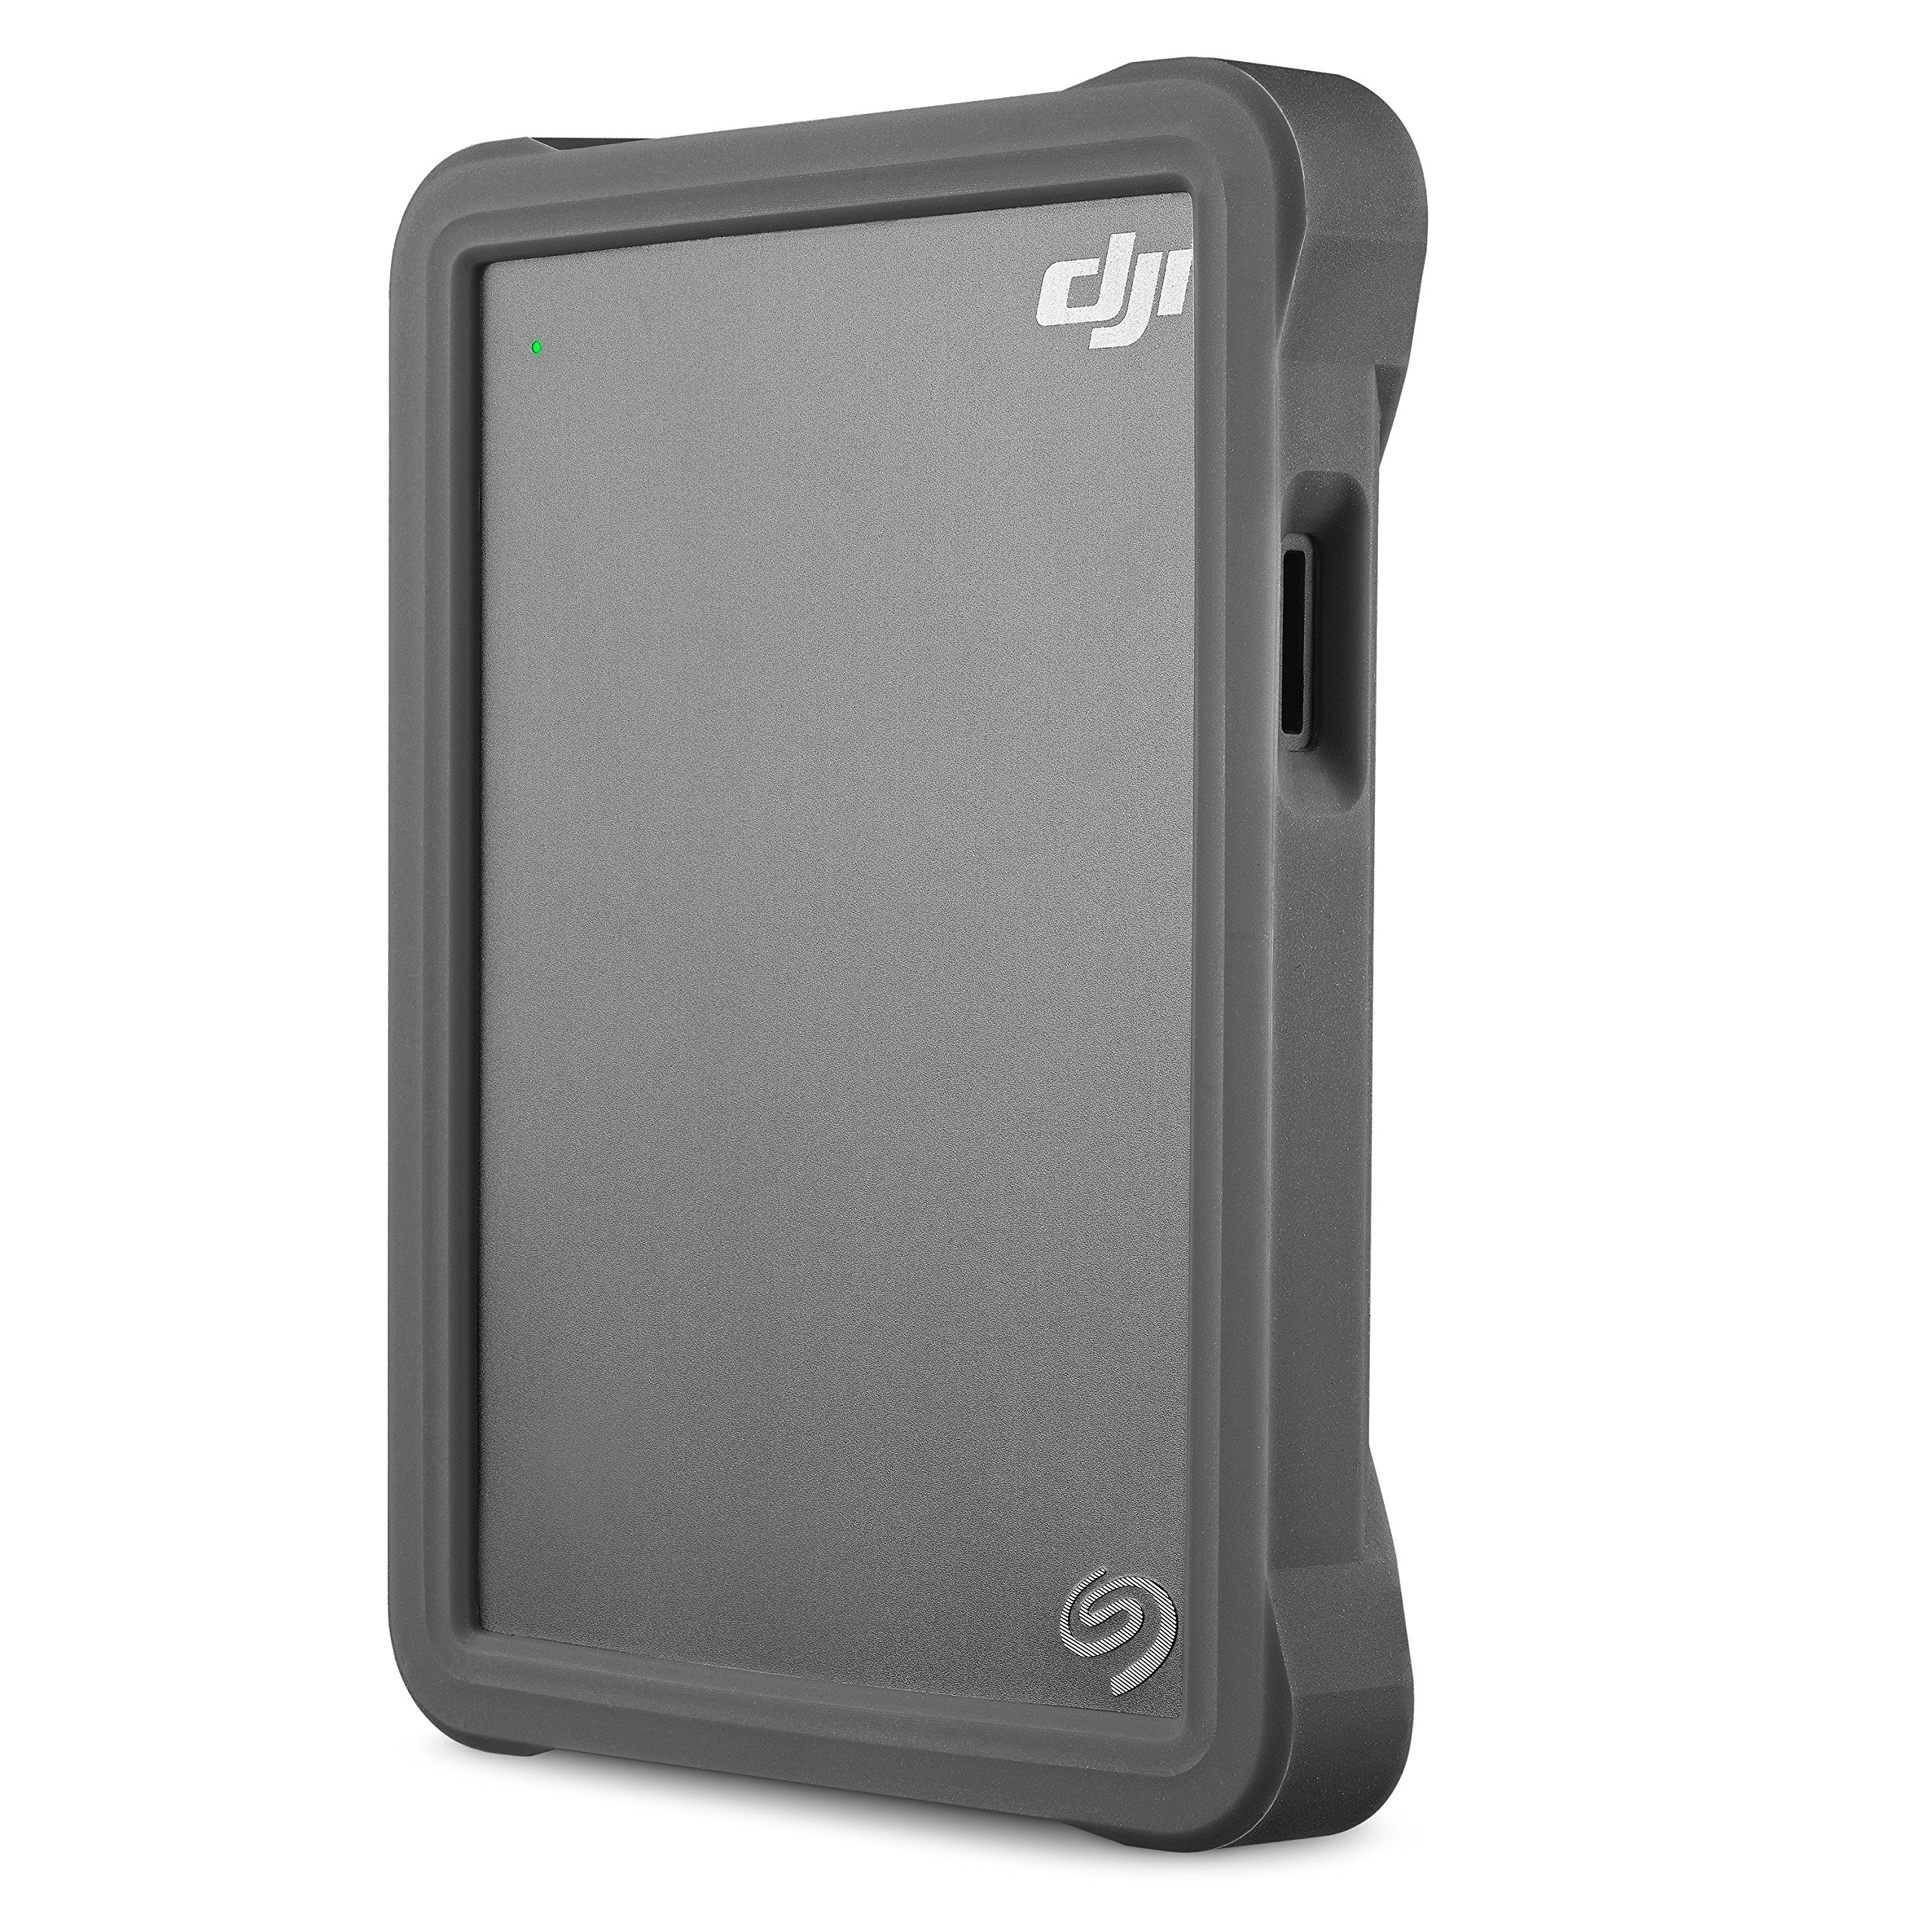 Seagate DJI Fly Drive for Drone Footage -Portable Drive withMicro SDCard Slot and USB-C to USB-C cable + 2mo Adobe Premier Pro CC by Seagate